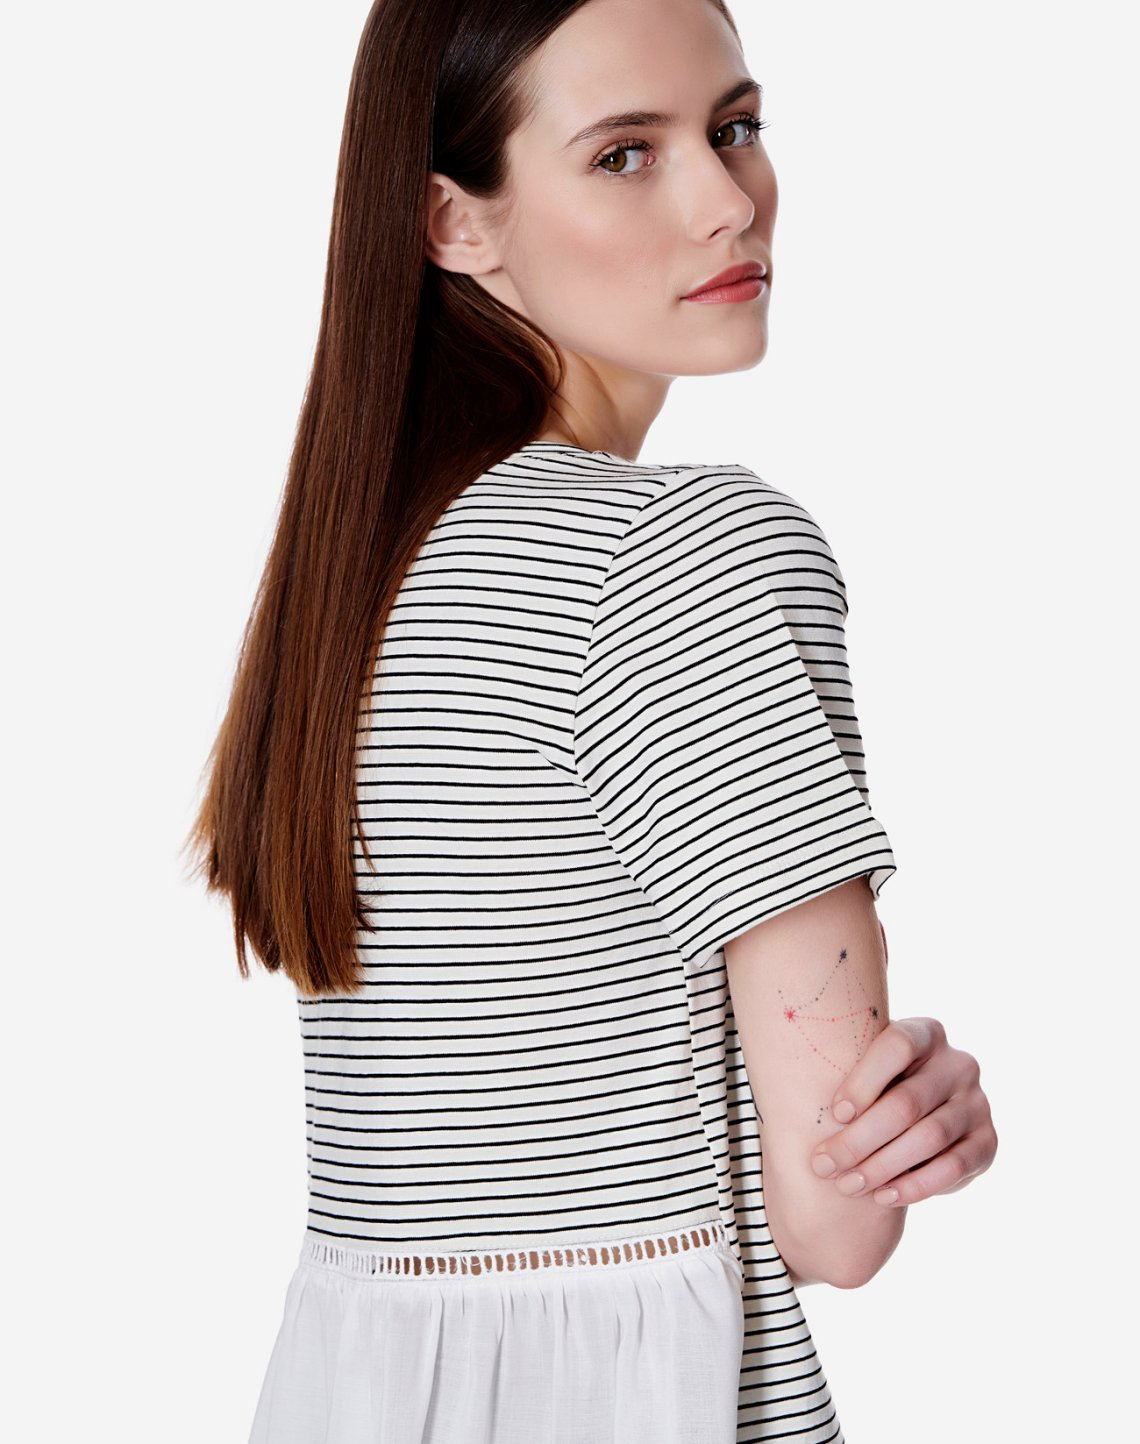 Striped top in contrast